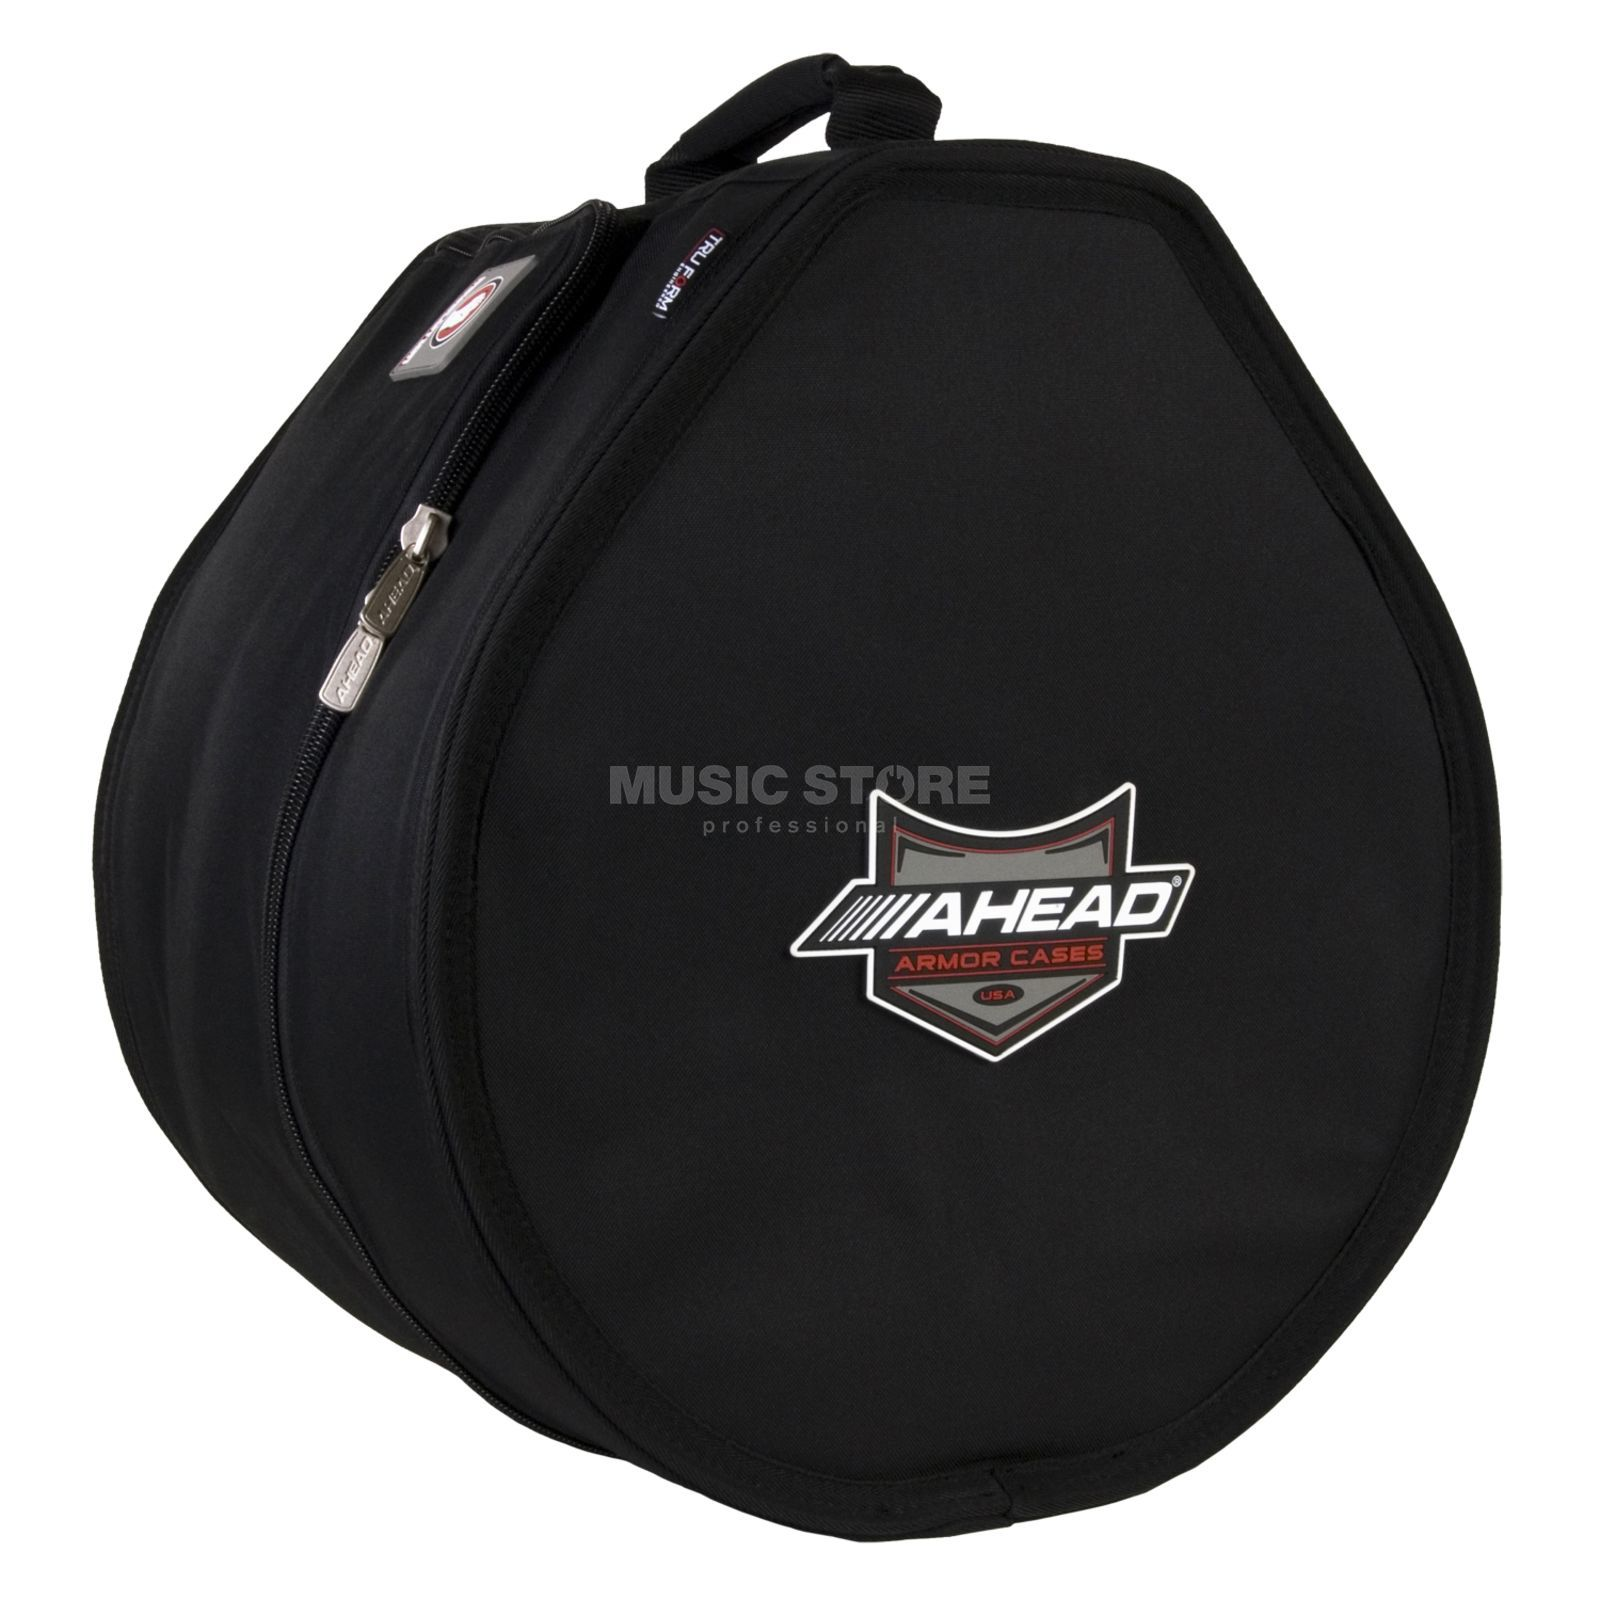 "Ahead Armor Cases Tom Bag 10""x9""  Produktbild"